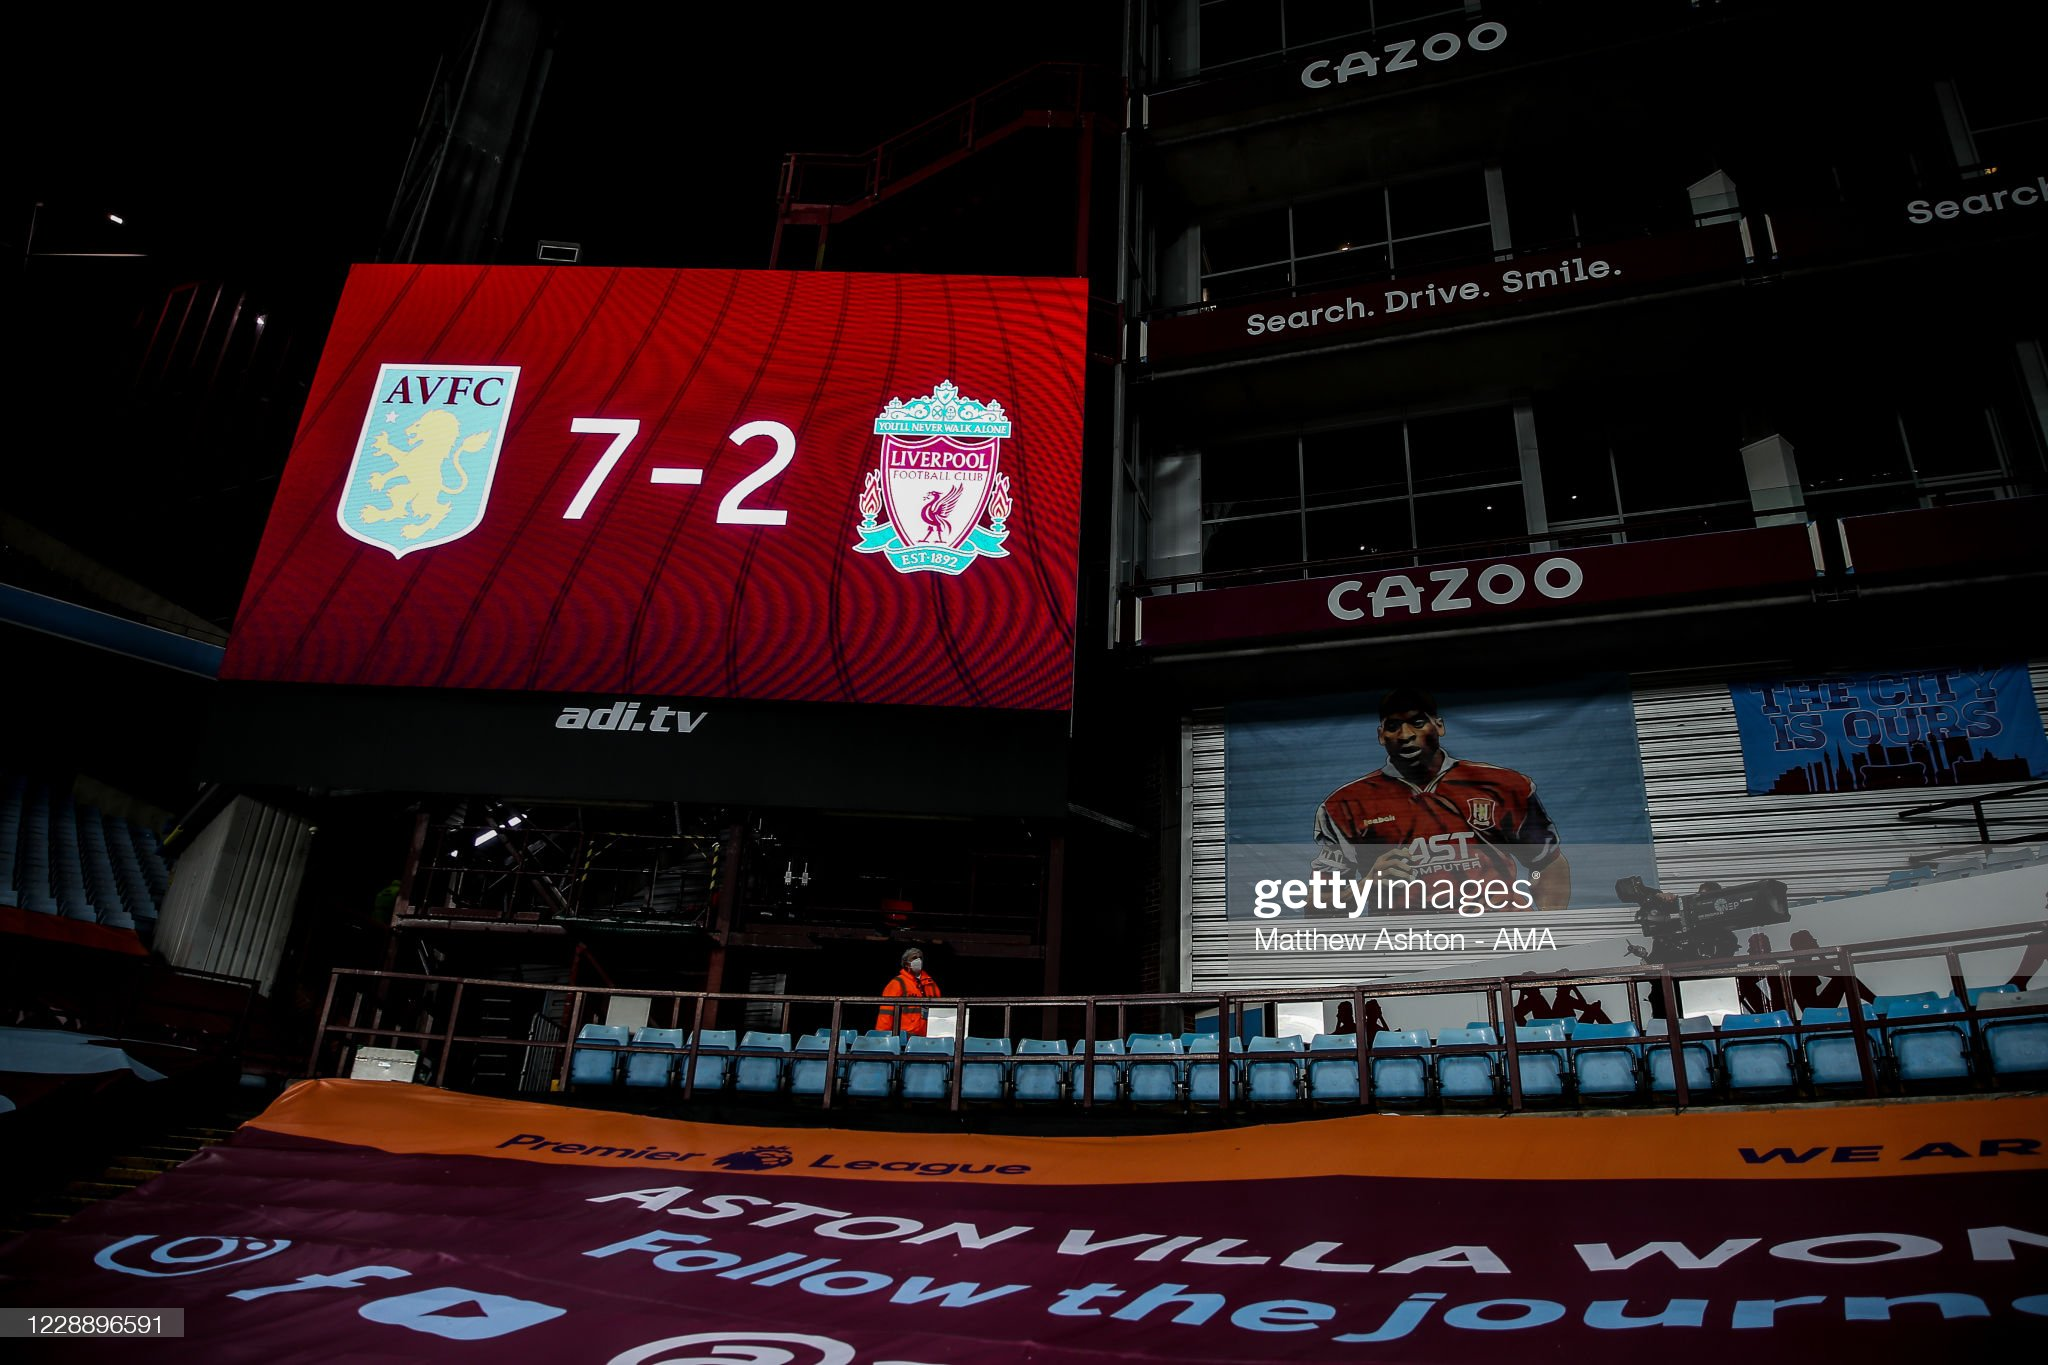 Liverpool forced to reflect after horror show at Villa Park